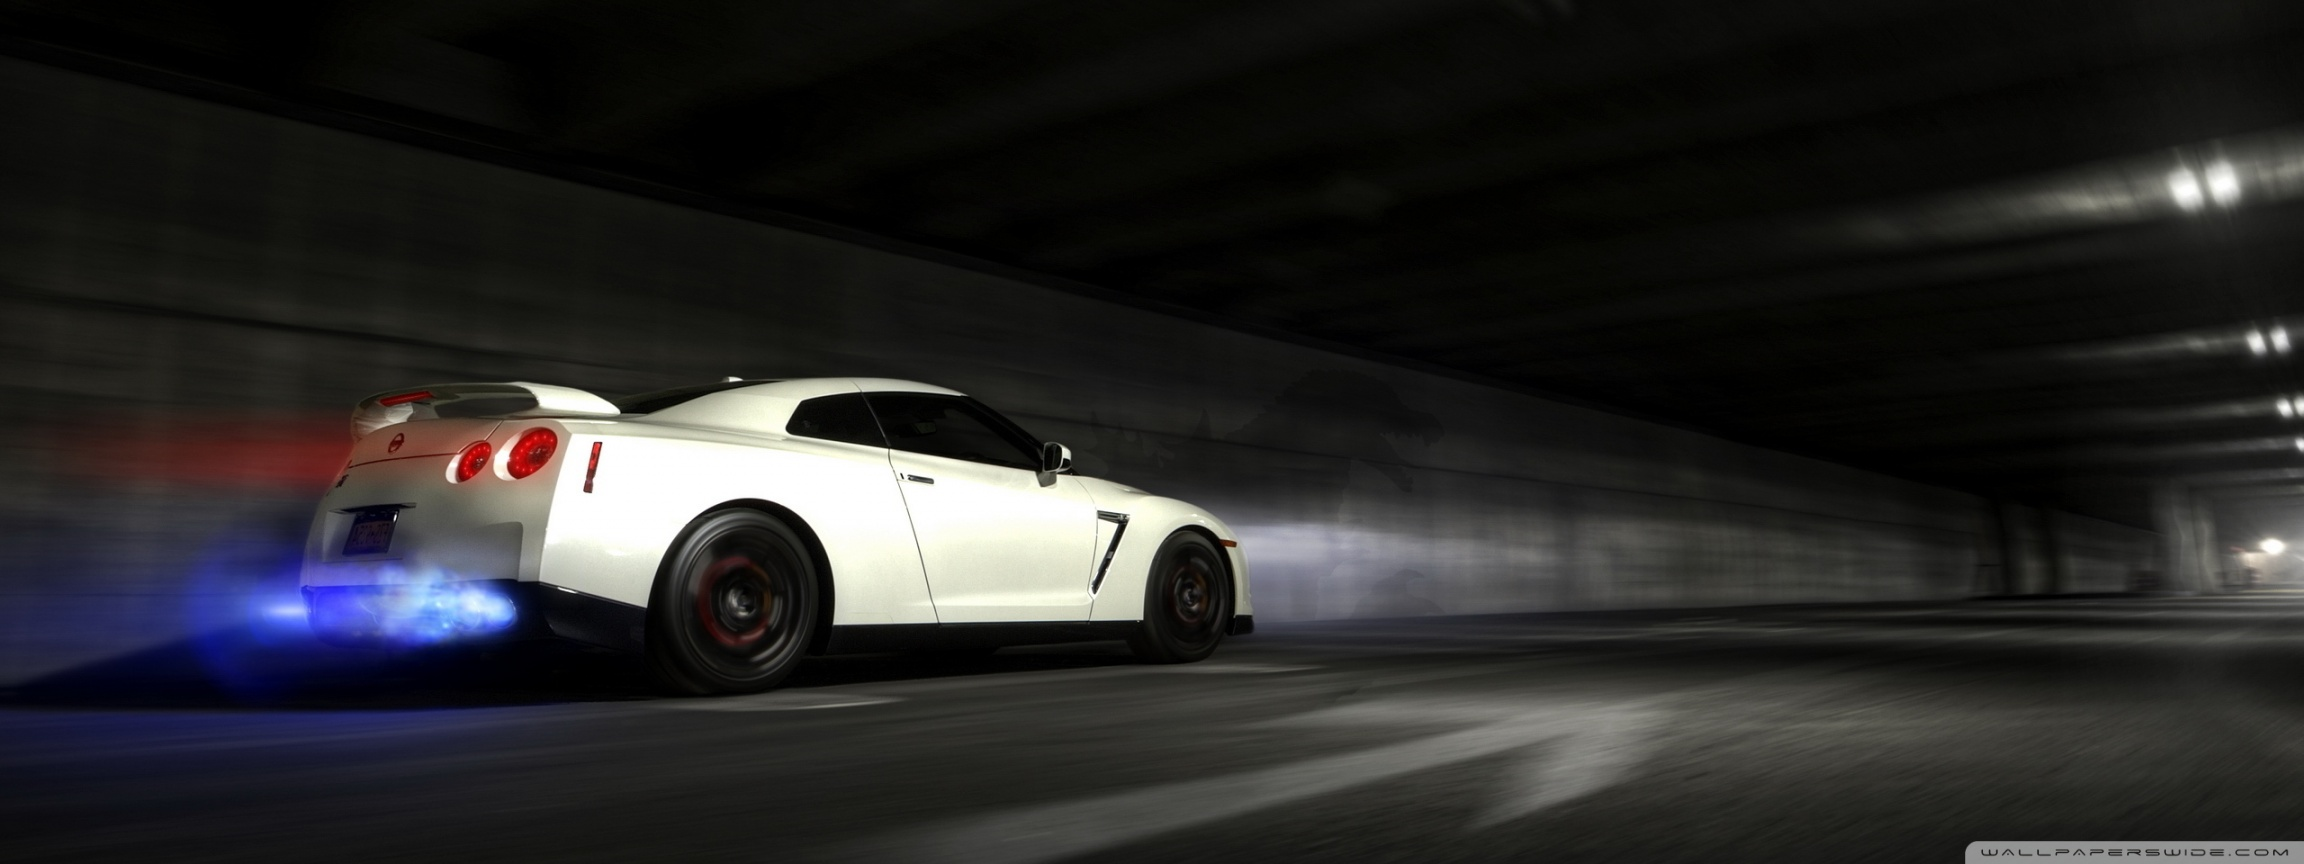 Car Wallpapers Reddit Gtr In Motion 4k Hd Desktop Wallpaper For 4k Ultra Hd Tv